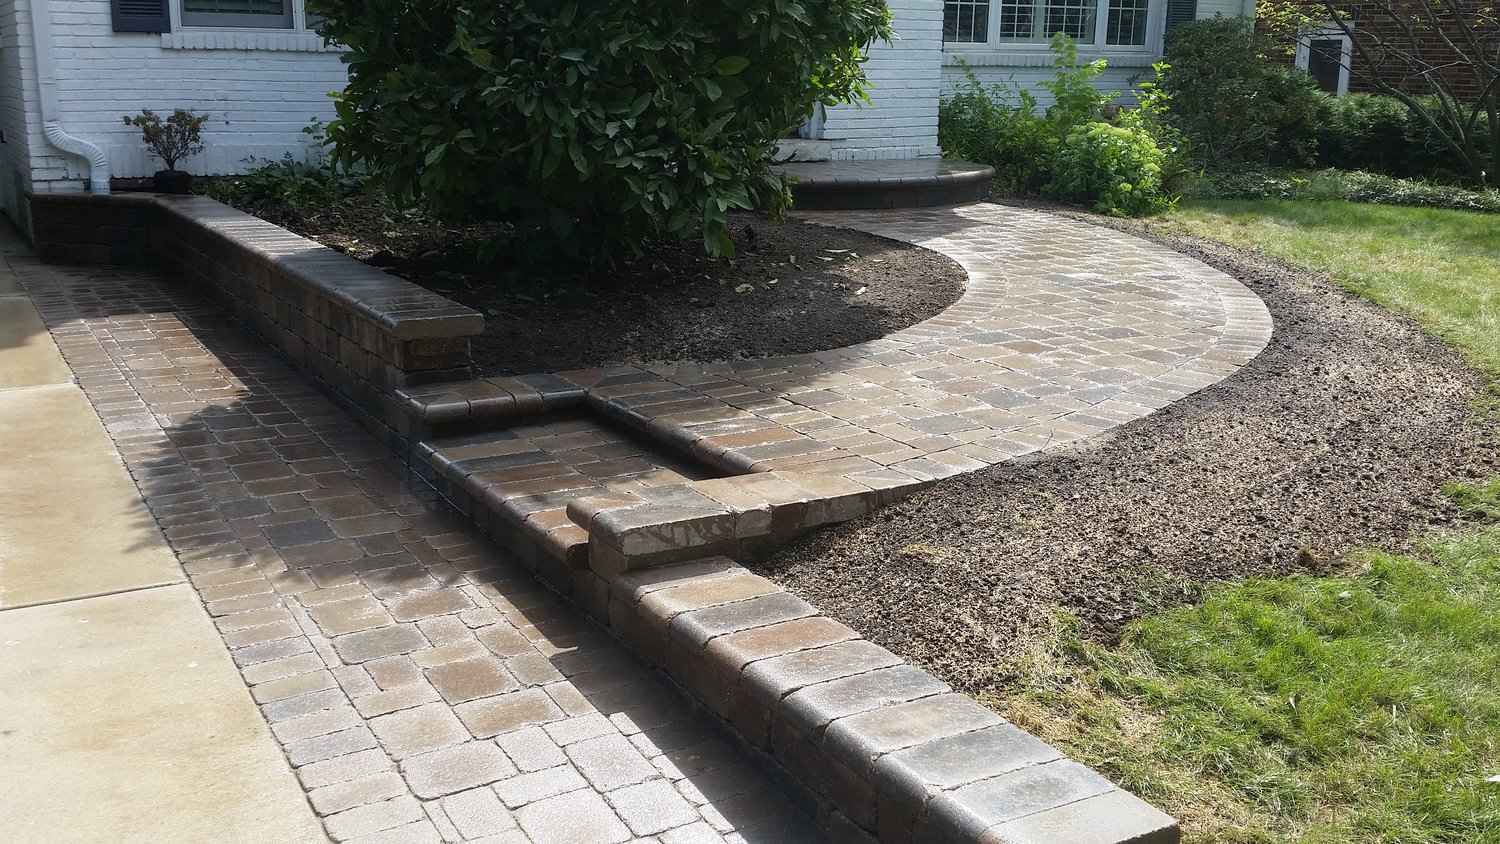 Wildorado-Amarillo TX Landscape Designs & Outdoor Living Areas-We offer Landscape Design, Outdoor Patios & Pergolas, Outdoor Living Spaces, Stonescapes, Residential & Commercial Landscaping, Irrigation Installation & Repairs, Drainage Systems, Landscape Lighting, Outdoor Living Spaces, Tree Service, Lawn Service, and more.